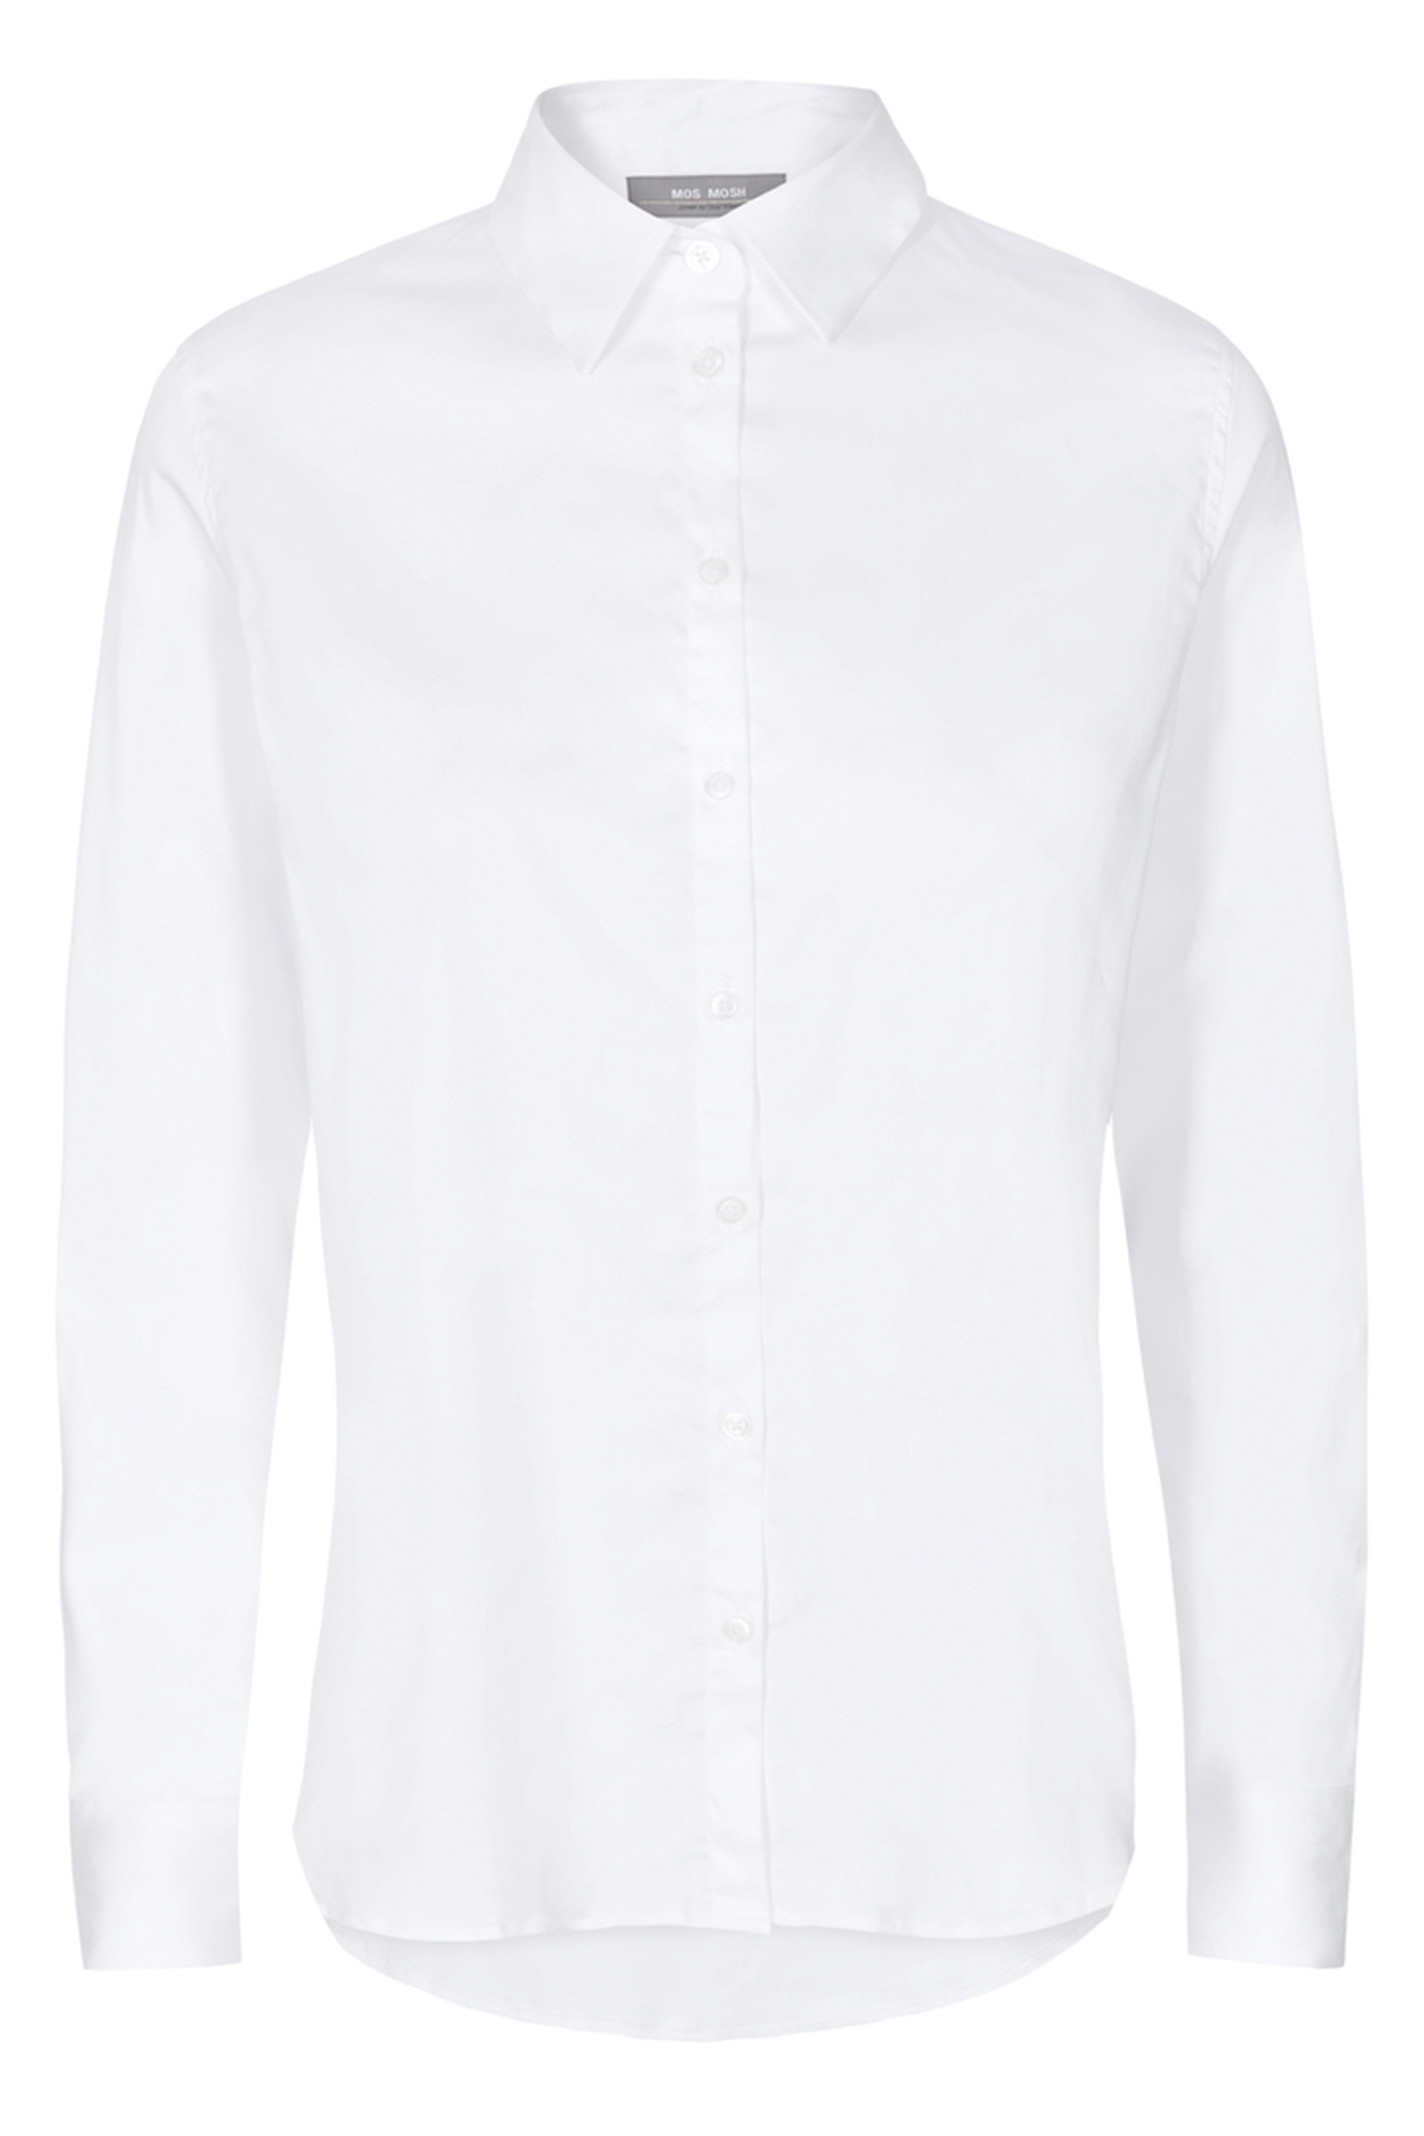 MOS MOSH Martina Sustainable Shirt 131730 White